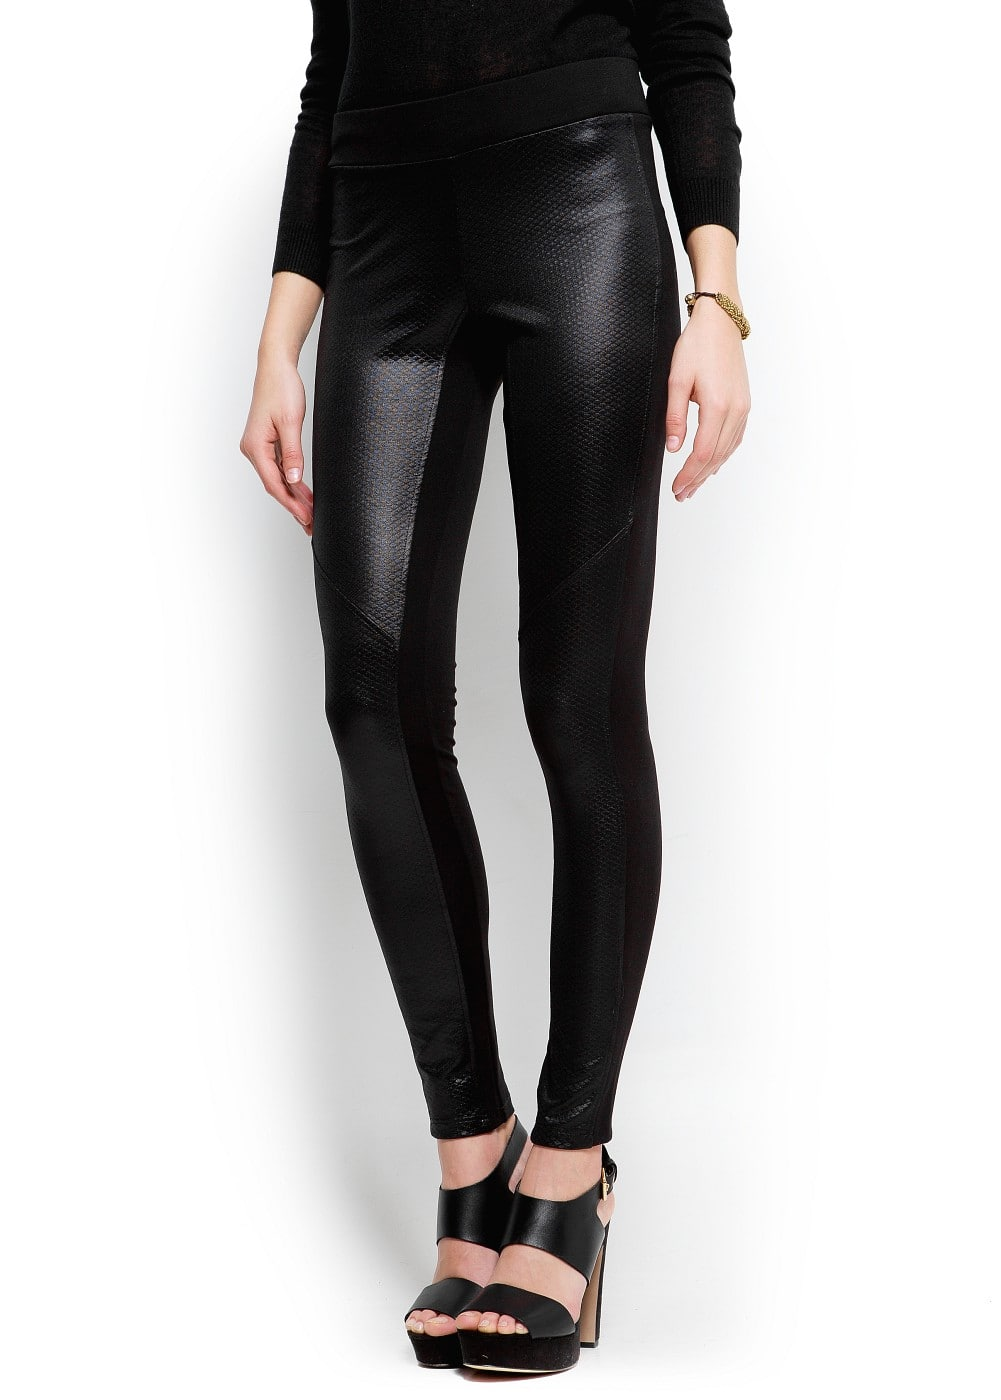 Shiny panel leggings